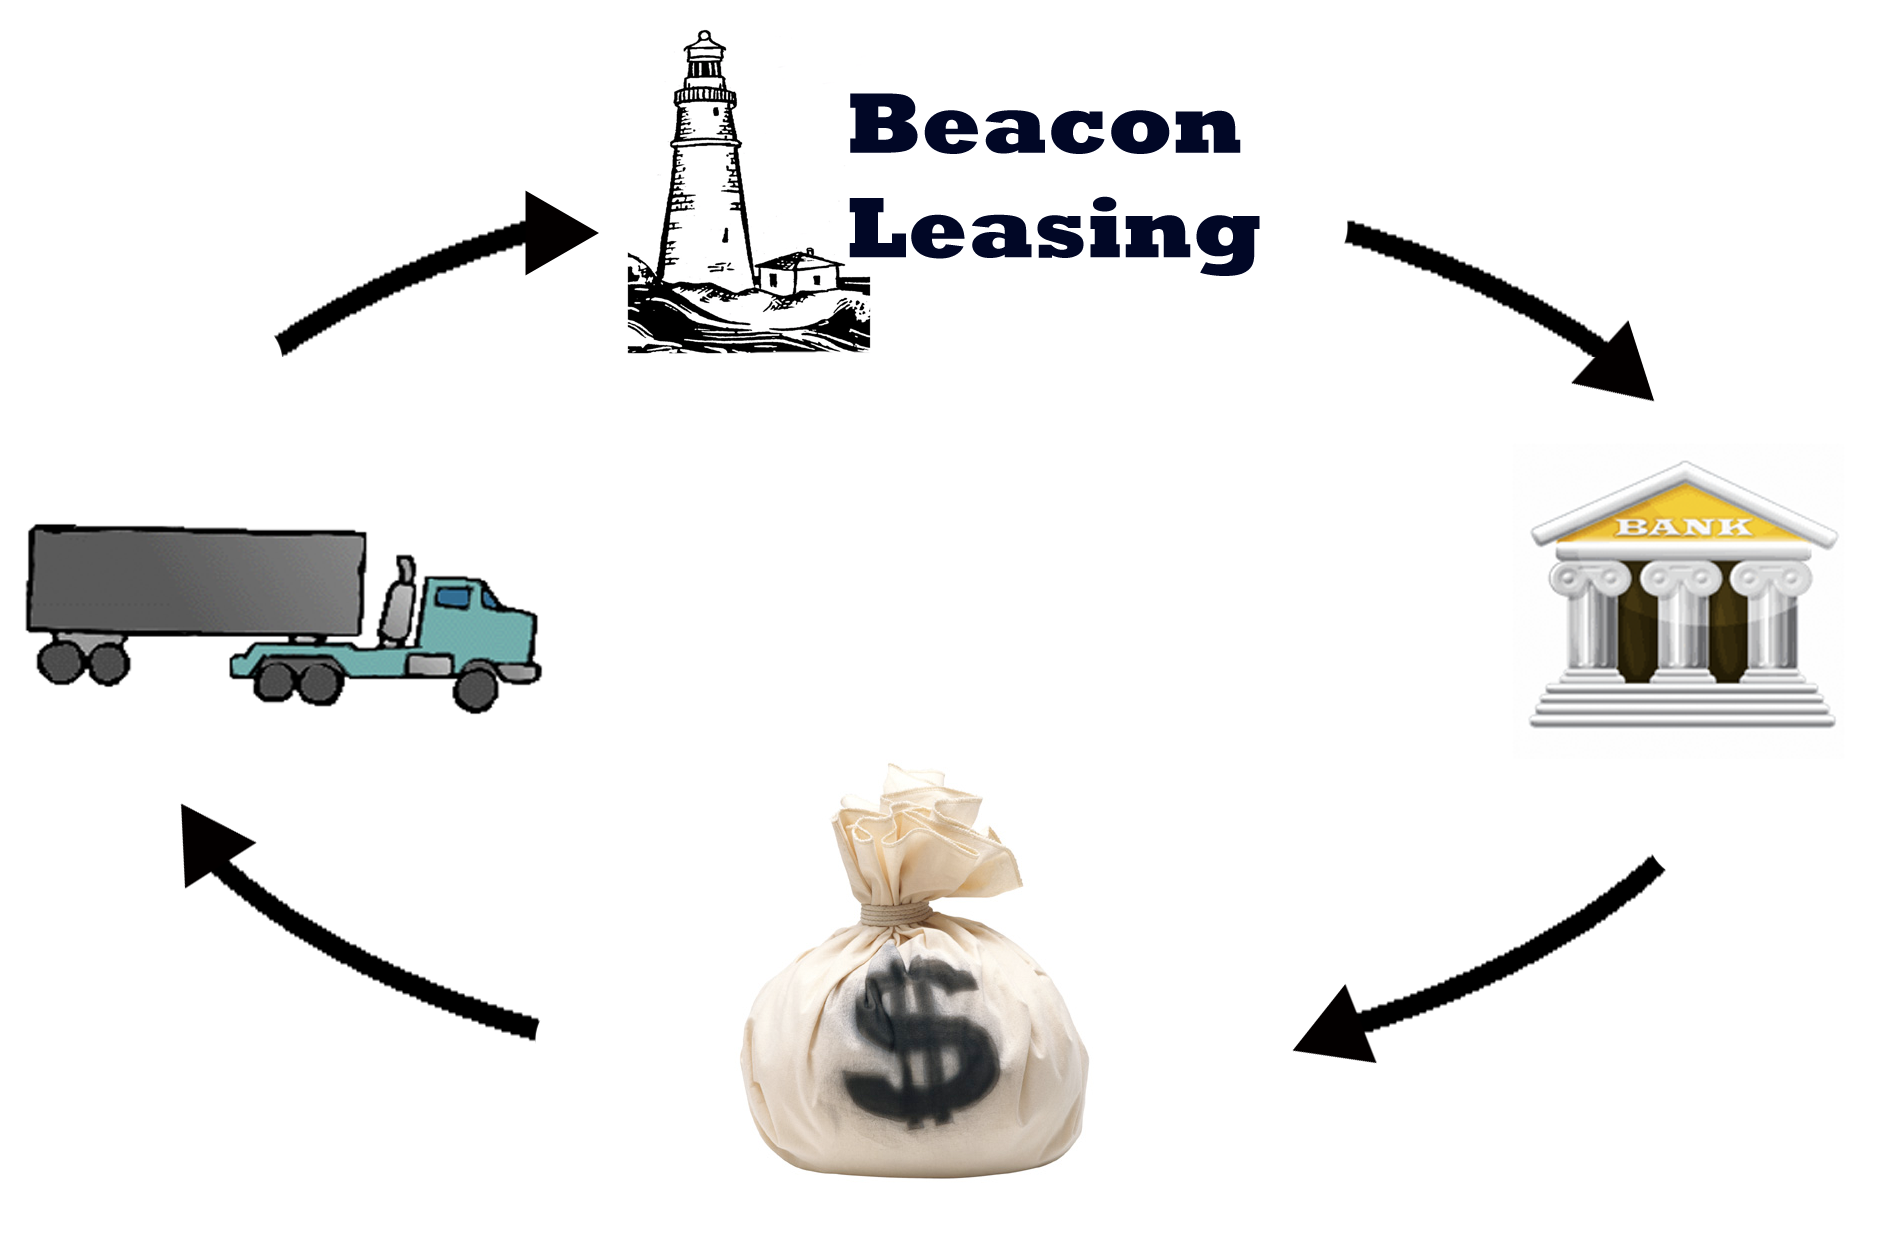 Kathryn Price Beacon Leasing